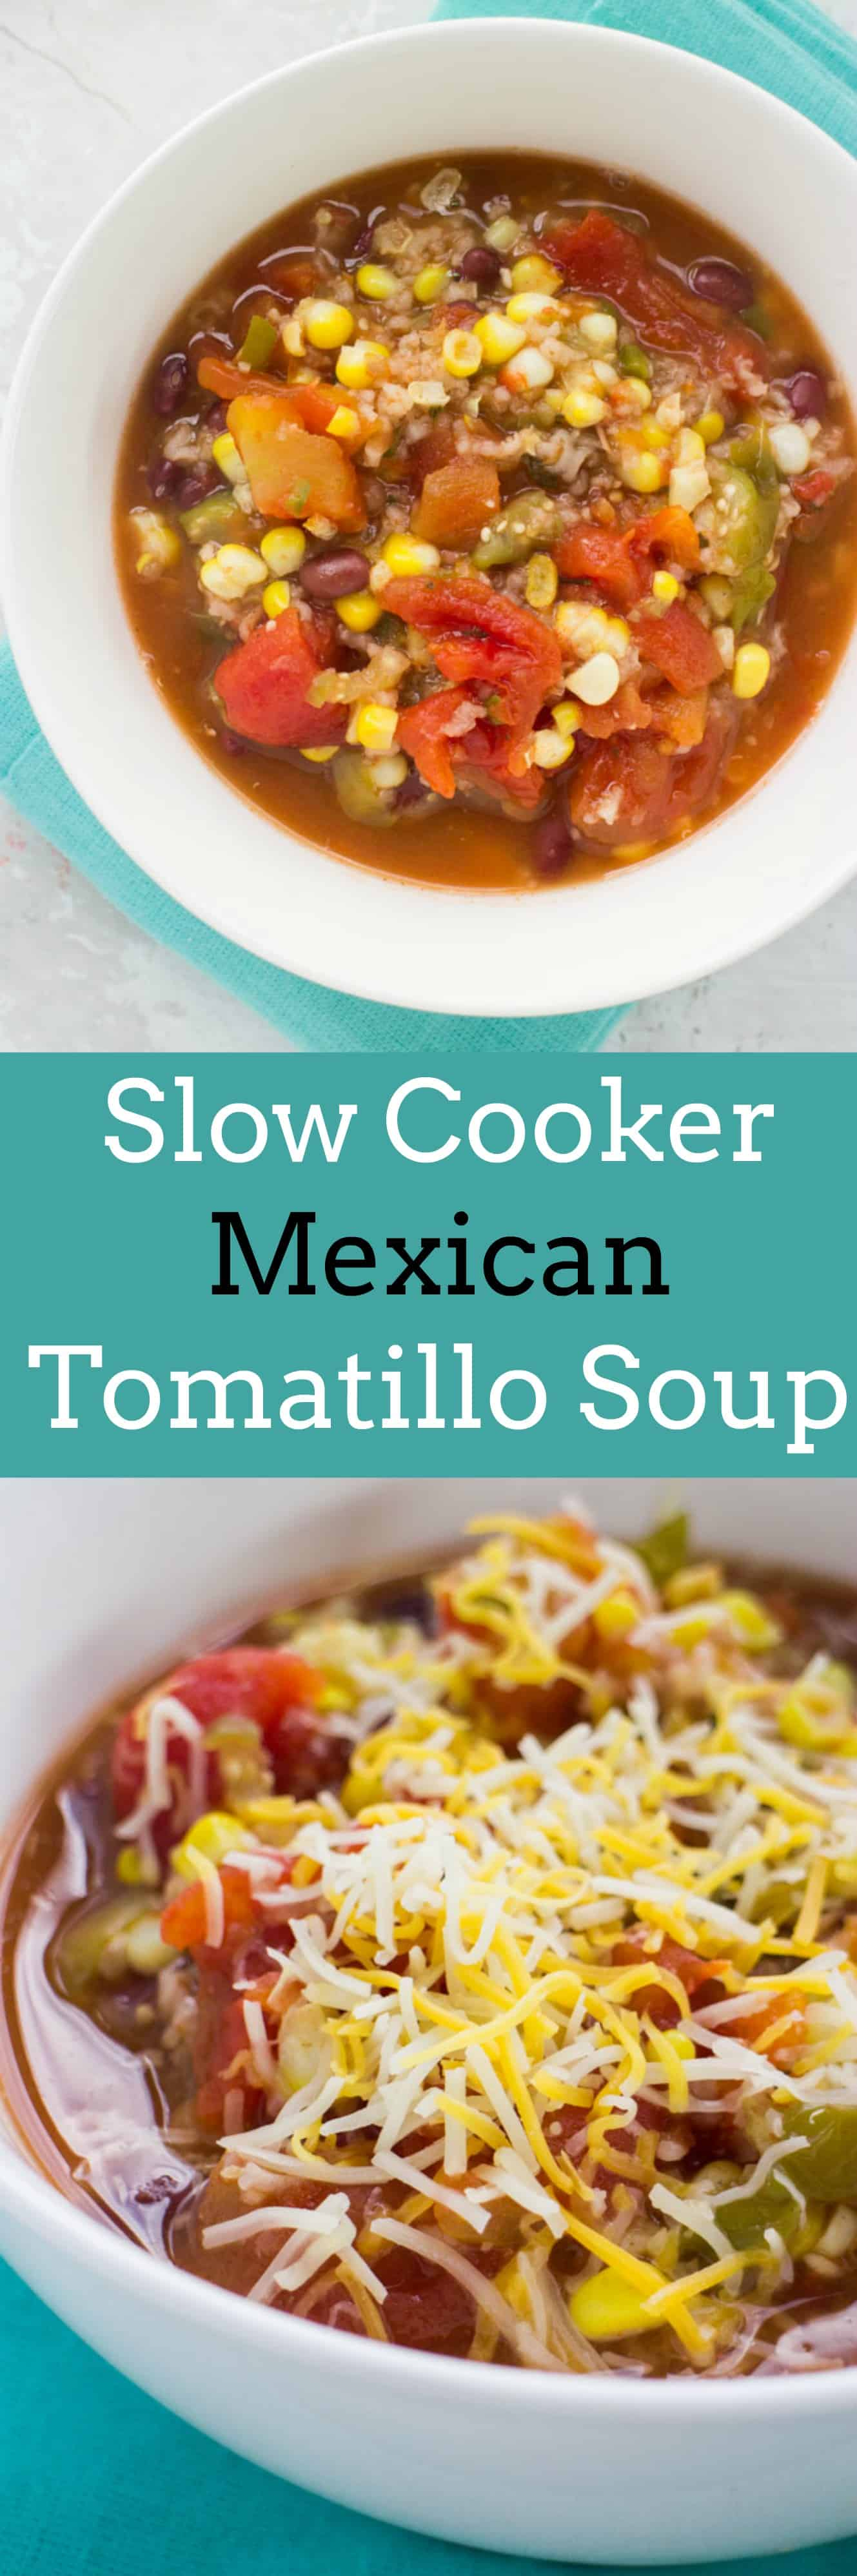 Slow cooker mexican vegetarian tomatillo soup brooklyn farm girl slow cooker mexican vegetarian tomatillo soup is a comforting recipe filled with healthy vegetables unlike forumfinder Gallery